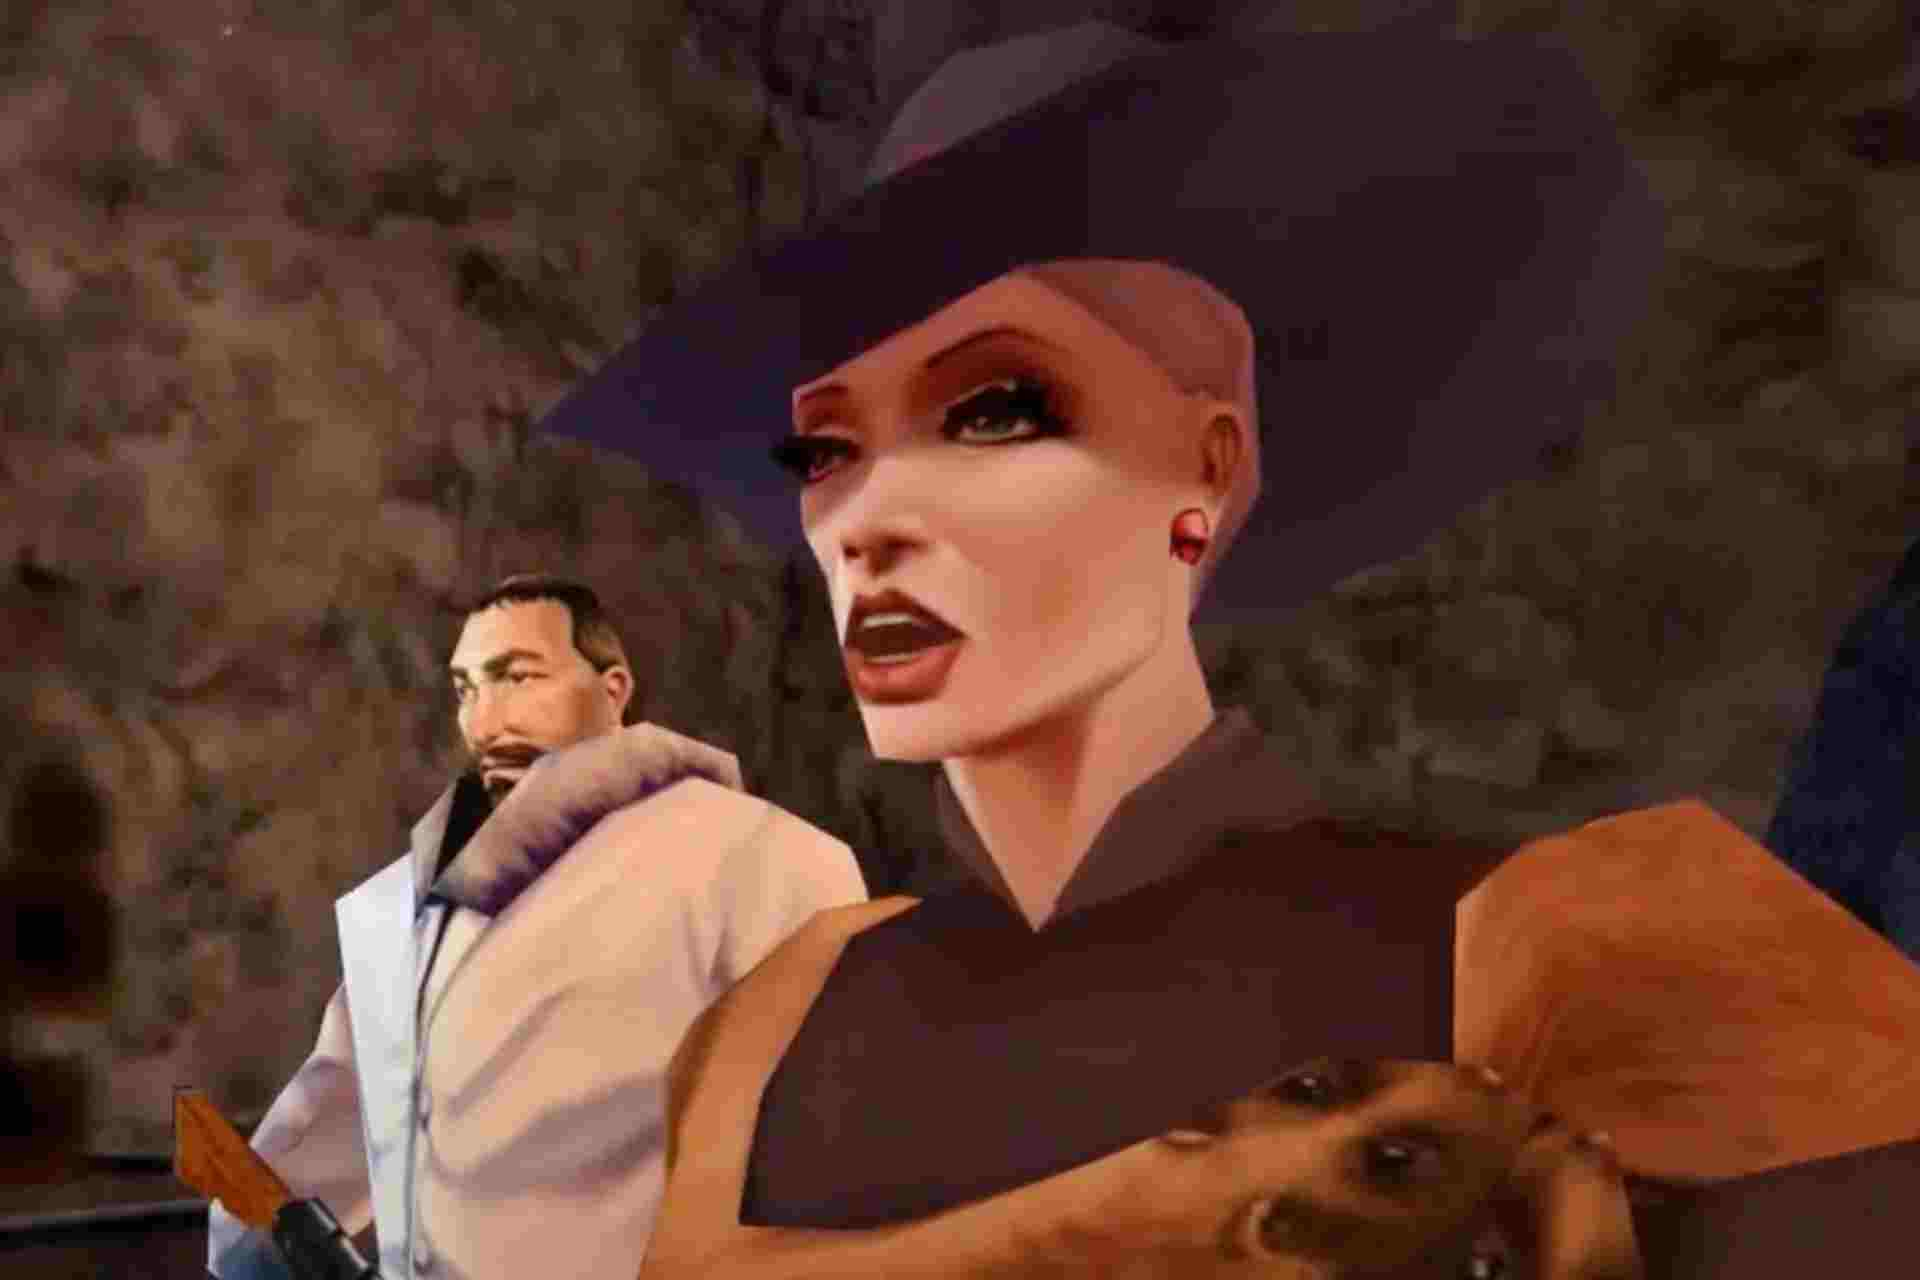 Felicity Dumas is a main villain in No one lives forever game.